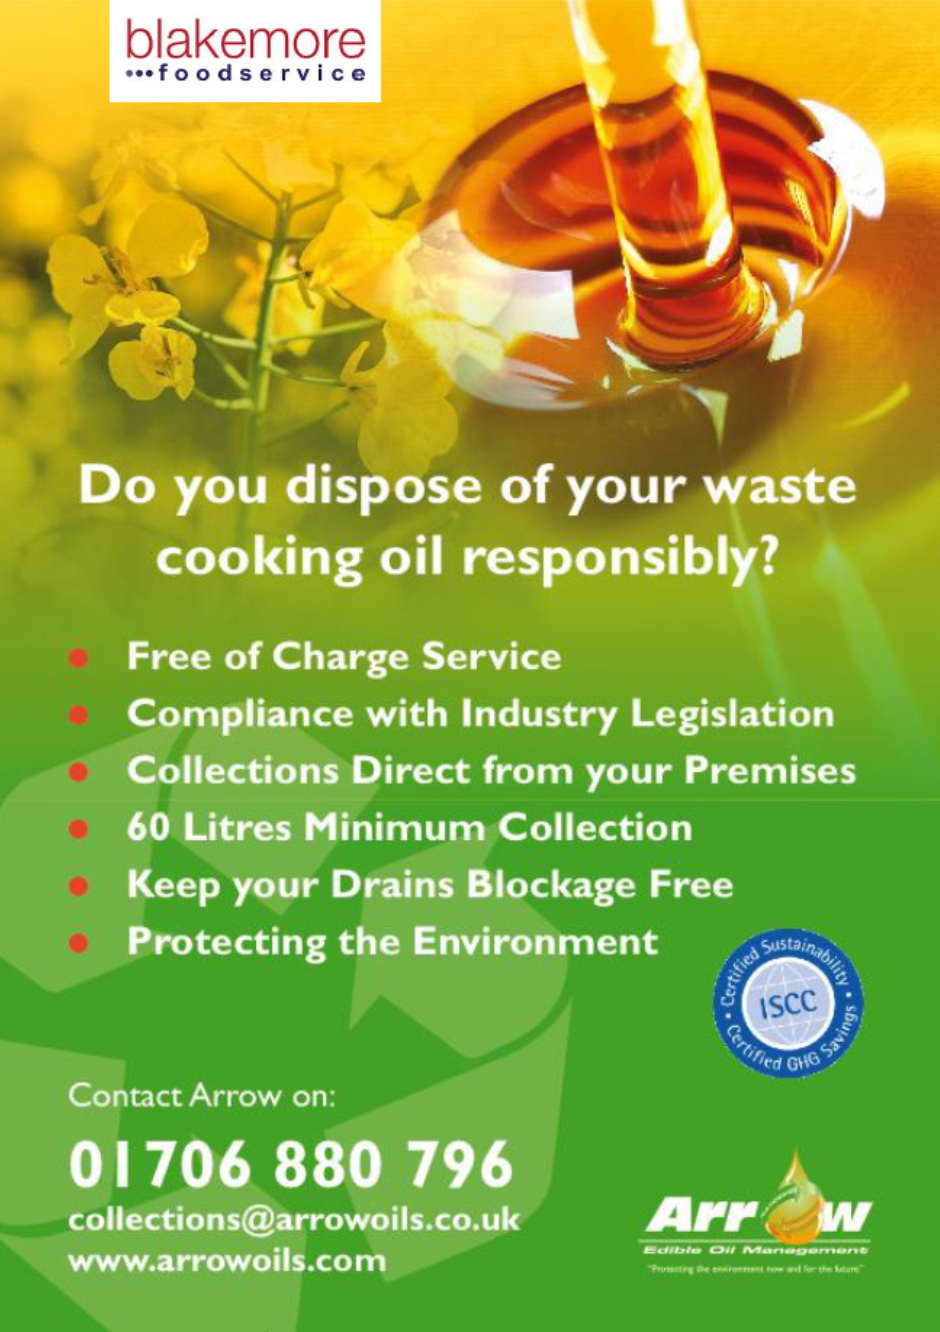 Blakemore_Foodservice_Oil_Recycling_Flyer